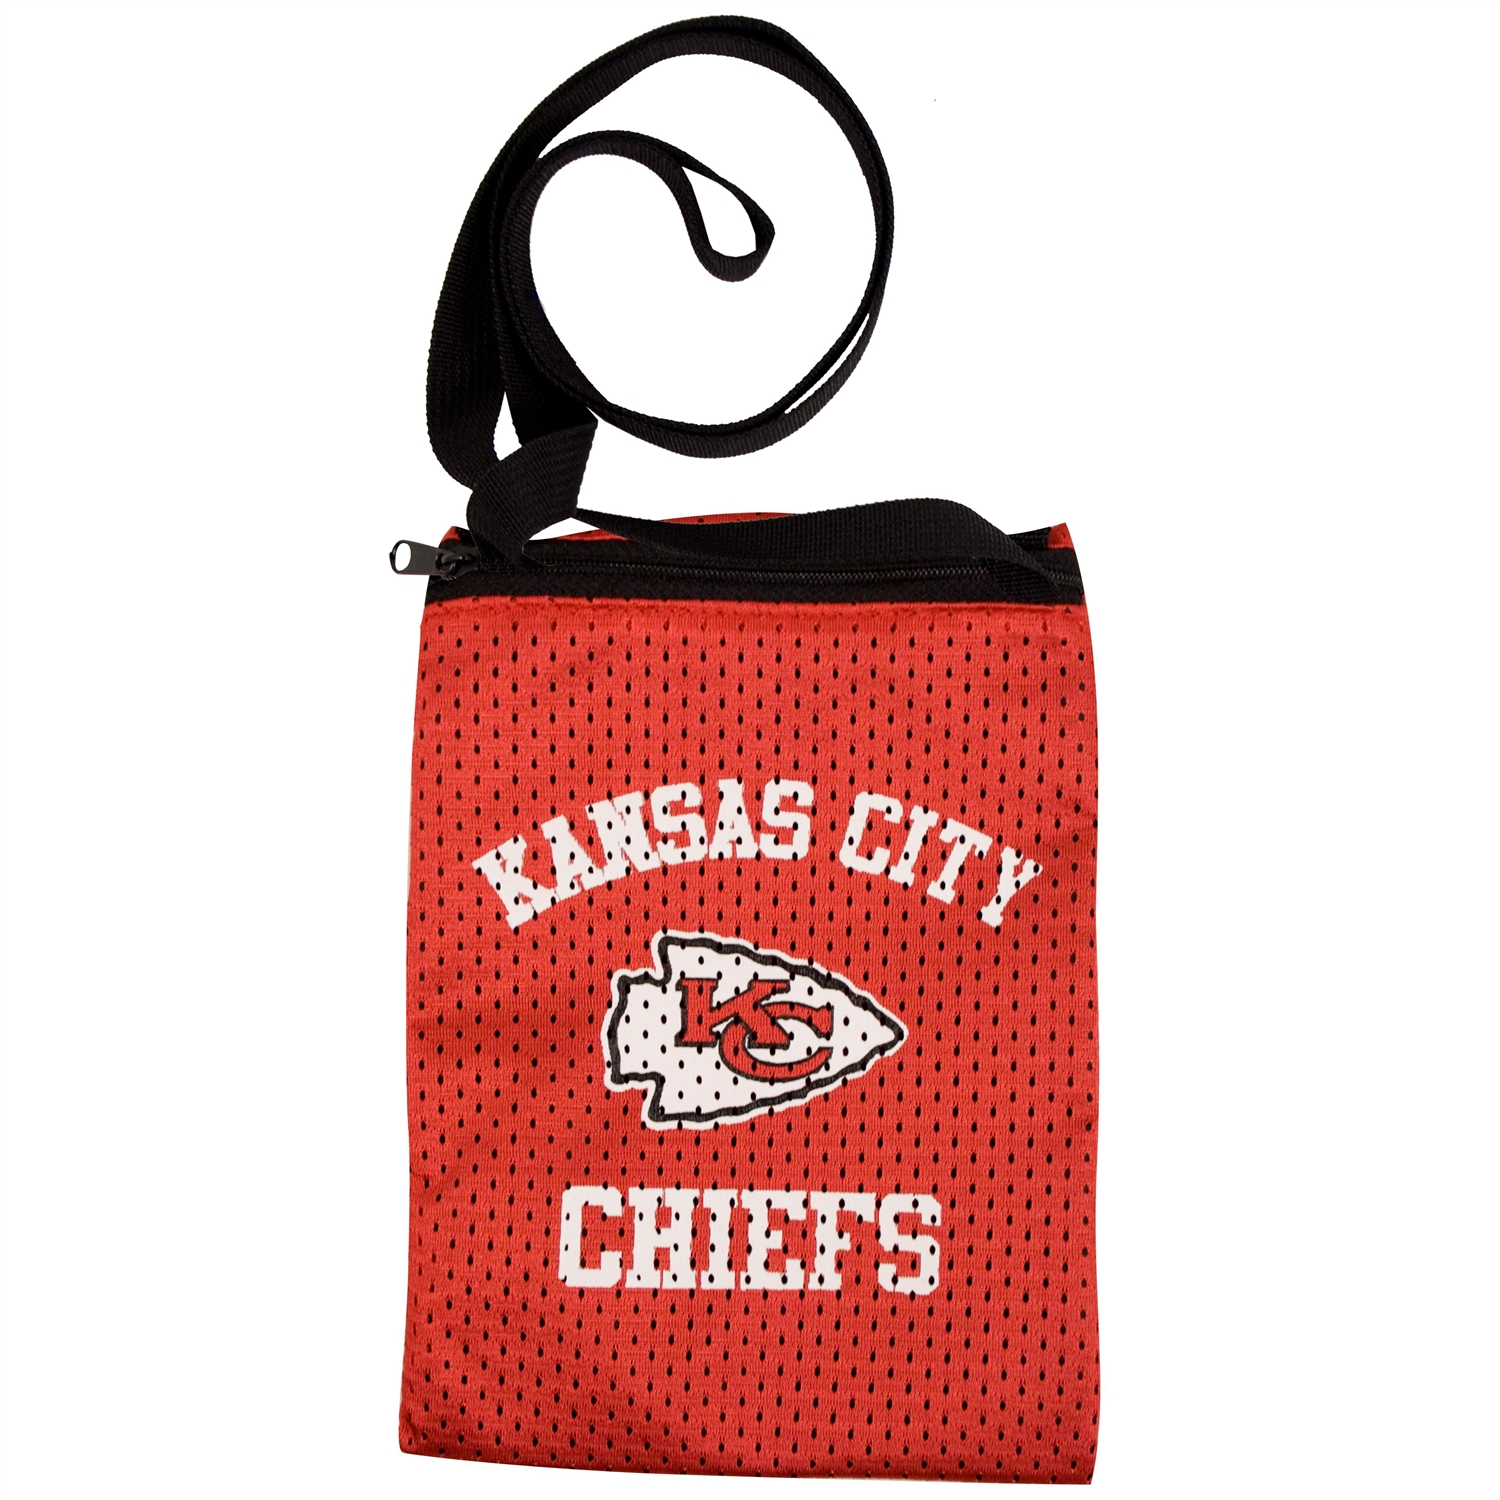 Football Nfl Football Kansas City Chiefs Toys Games Puzzles Games - 300103-chie-1 - Kansas City Chiefs Game Day Pouch 300103-CHIE-1